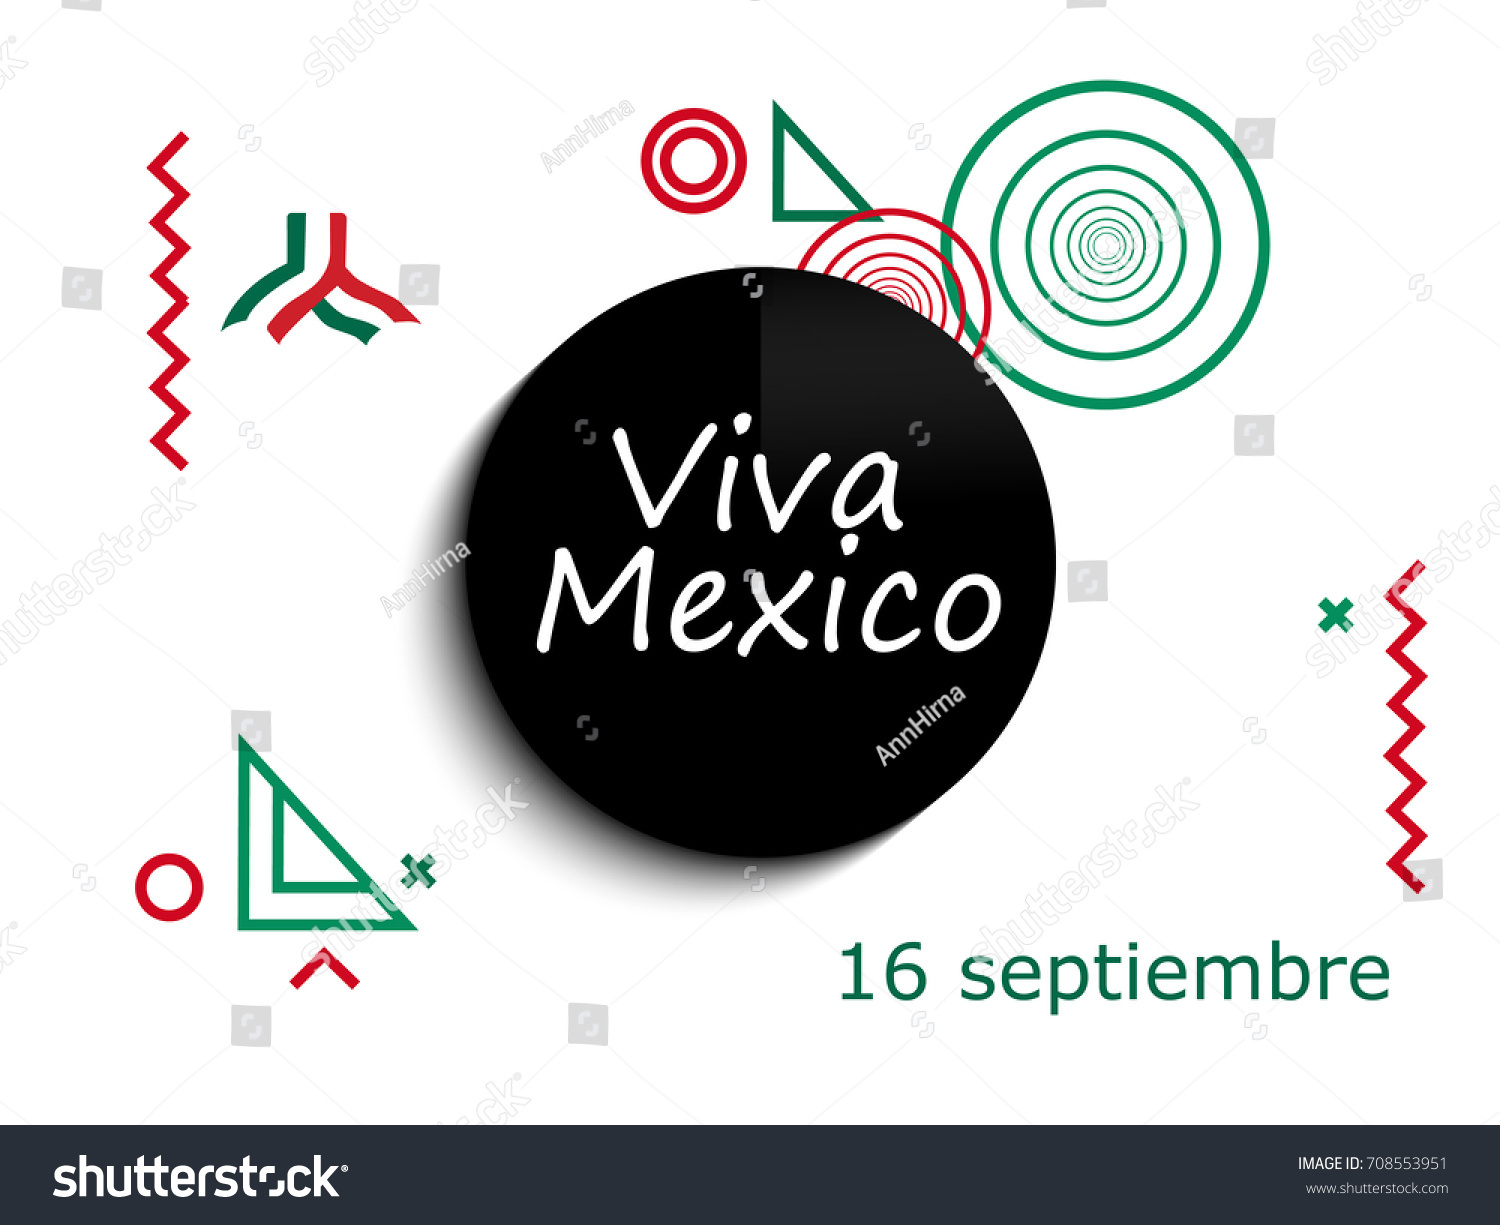 Mexico independence day greetings card viva stock vector 708553951 mexico independence day greetings card viva mexico traditional mexican phrase holiday modern design m4hsunfo Image collections